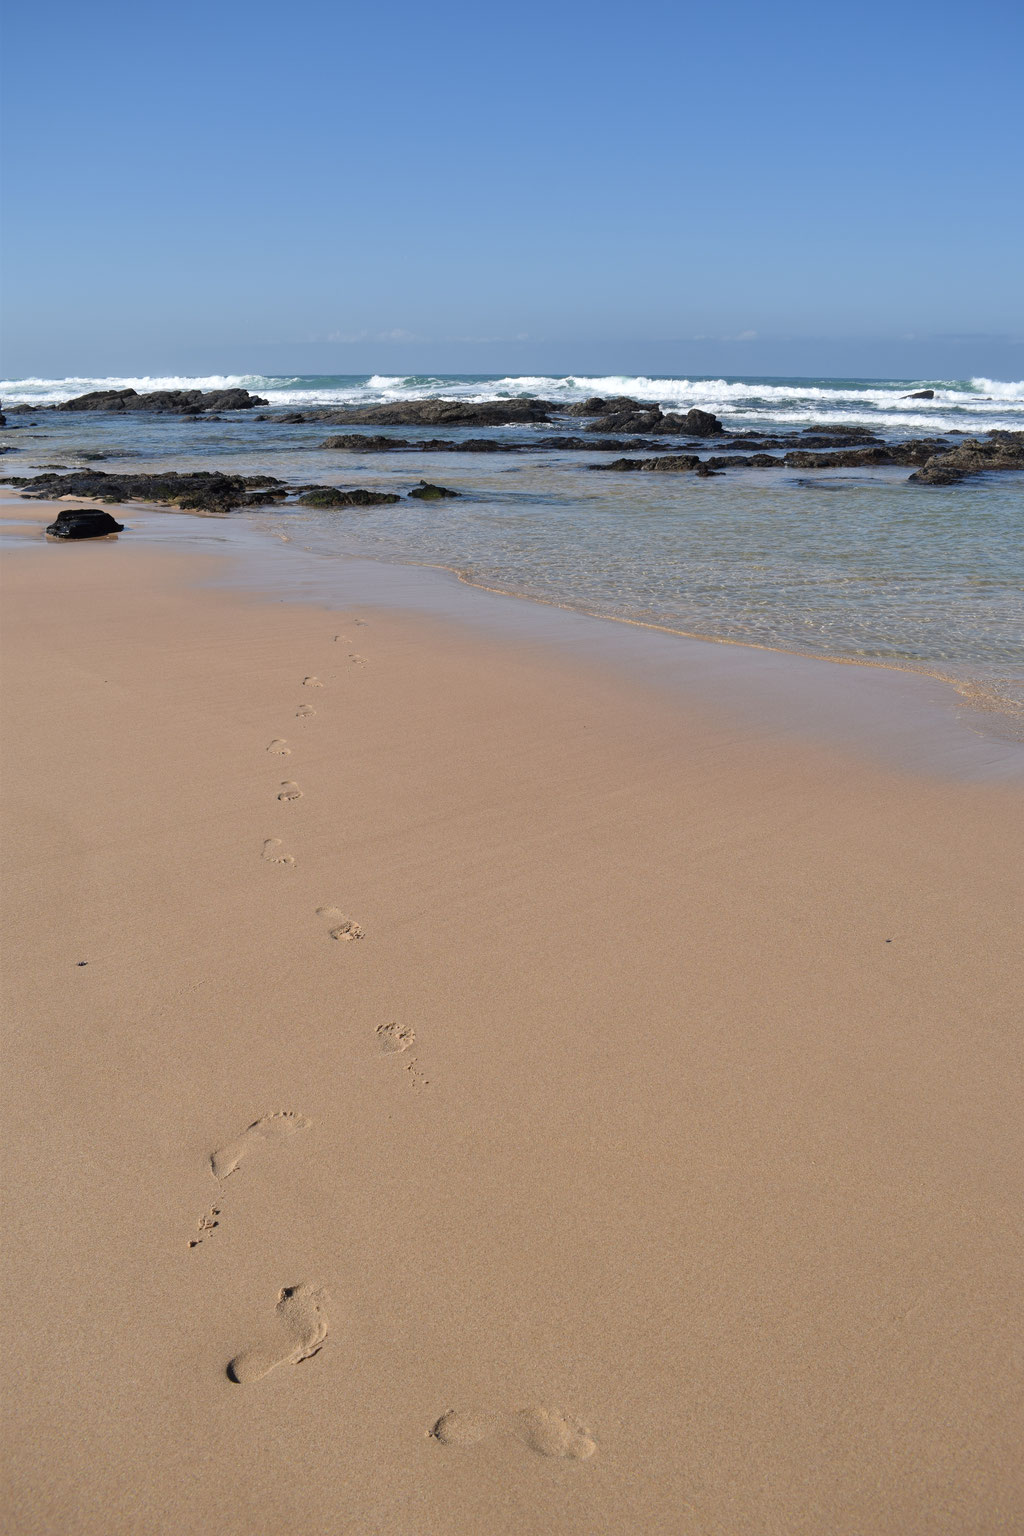 Malhão beach, Portugal - footprints in the sand